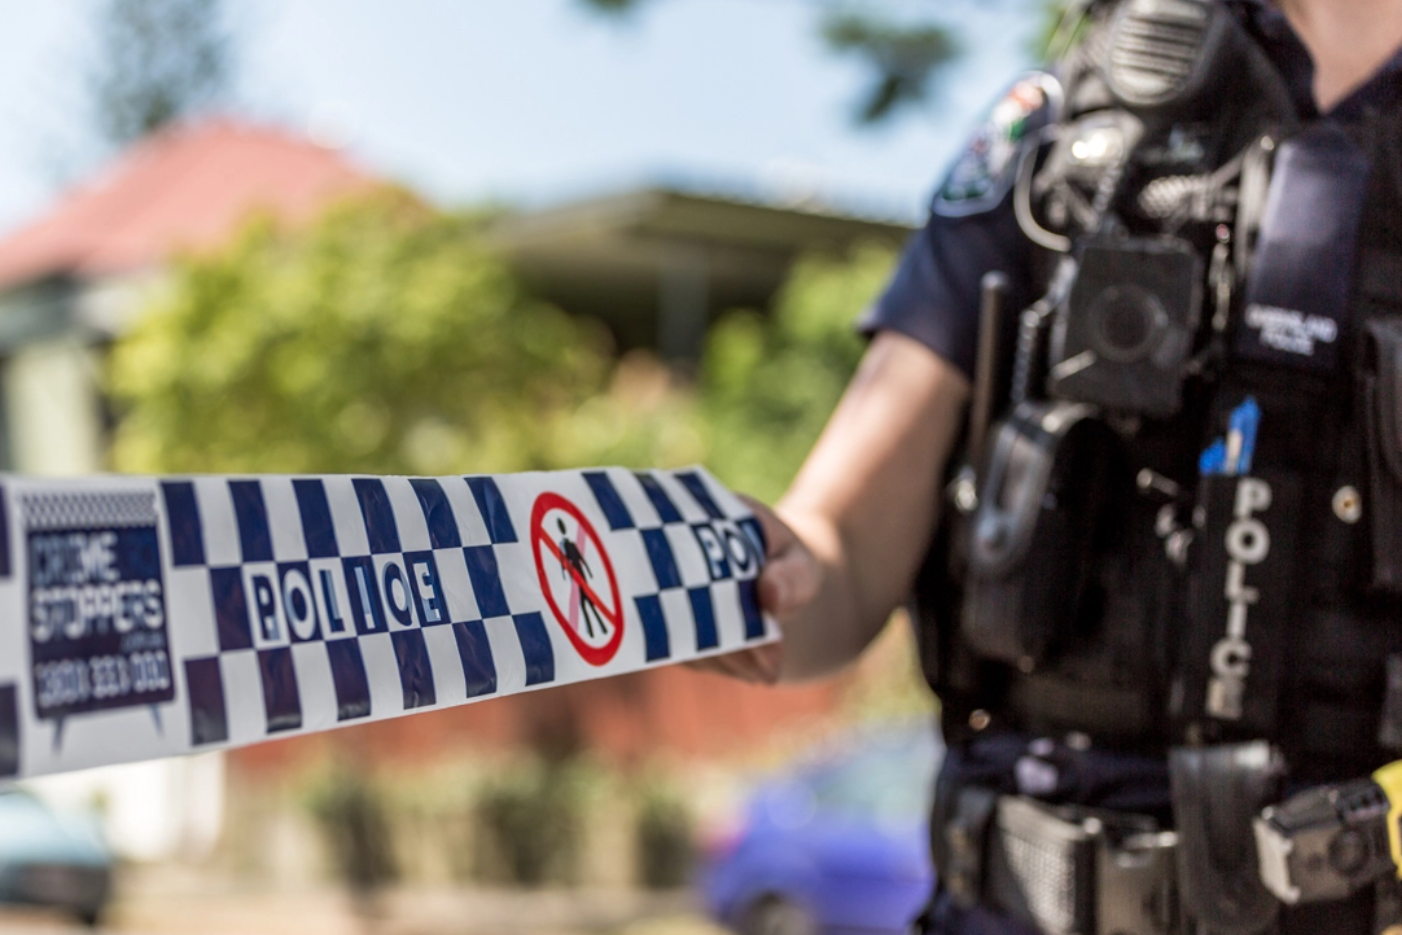 Wilston man allegedly assaulted with brick during home invasion